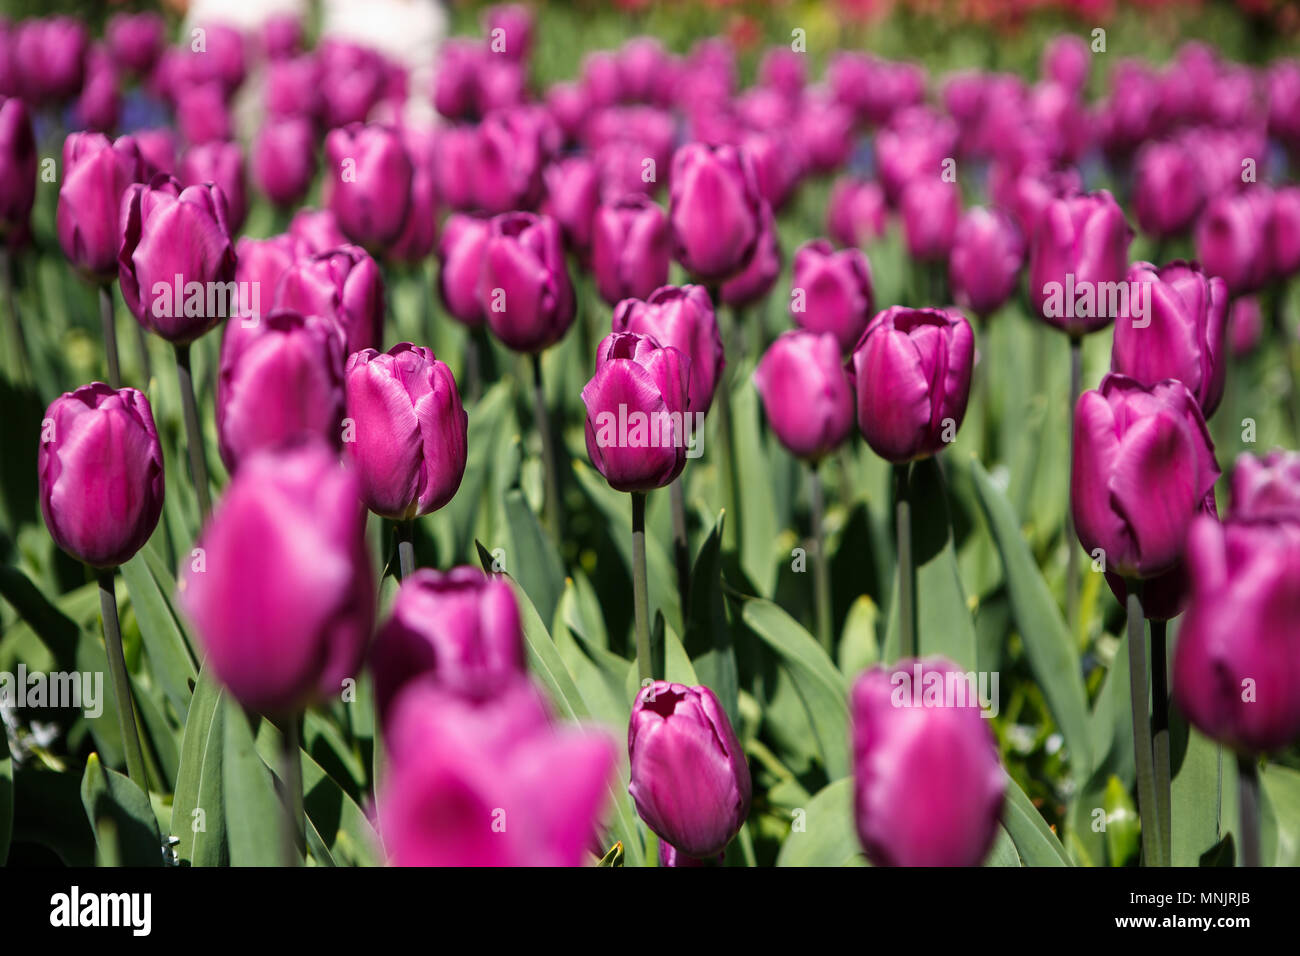 Beautiful colorful purple tulips flowers bloom in spring garden beautiful colorful purple tulips flowers bloom in spring gardencorative wallpaper with violet tulip flower blossom in springtimeauty of nature p mightylinksfo